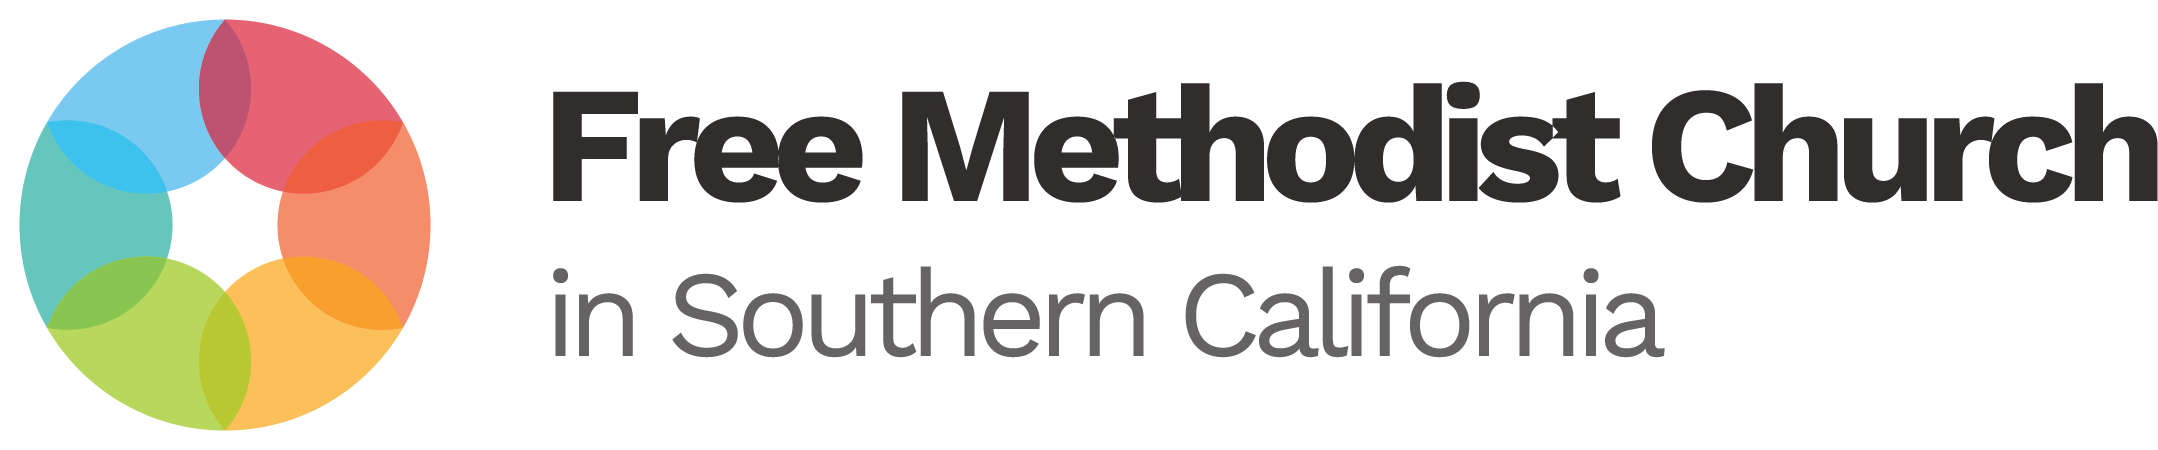 Free Methodist Church logo